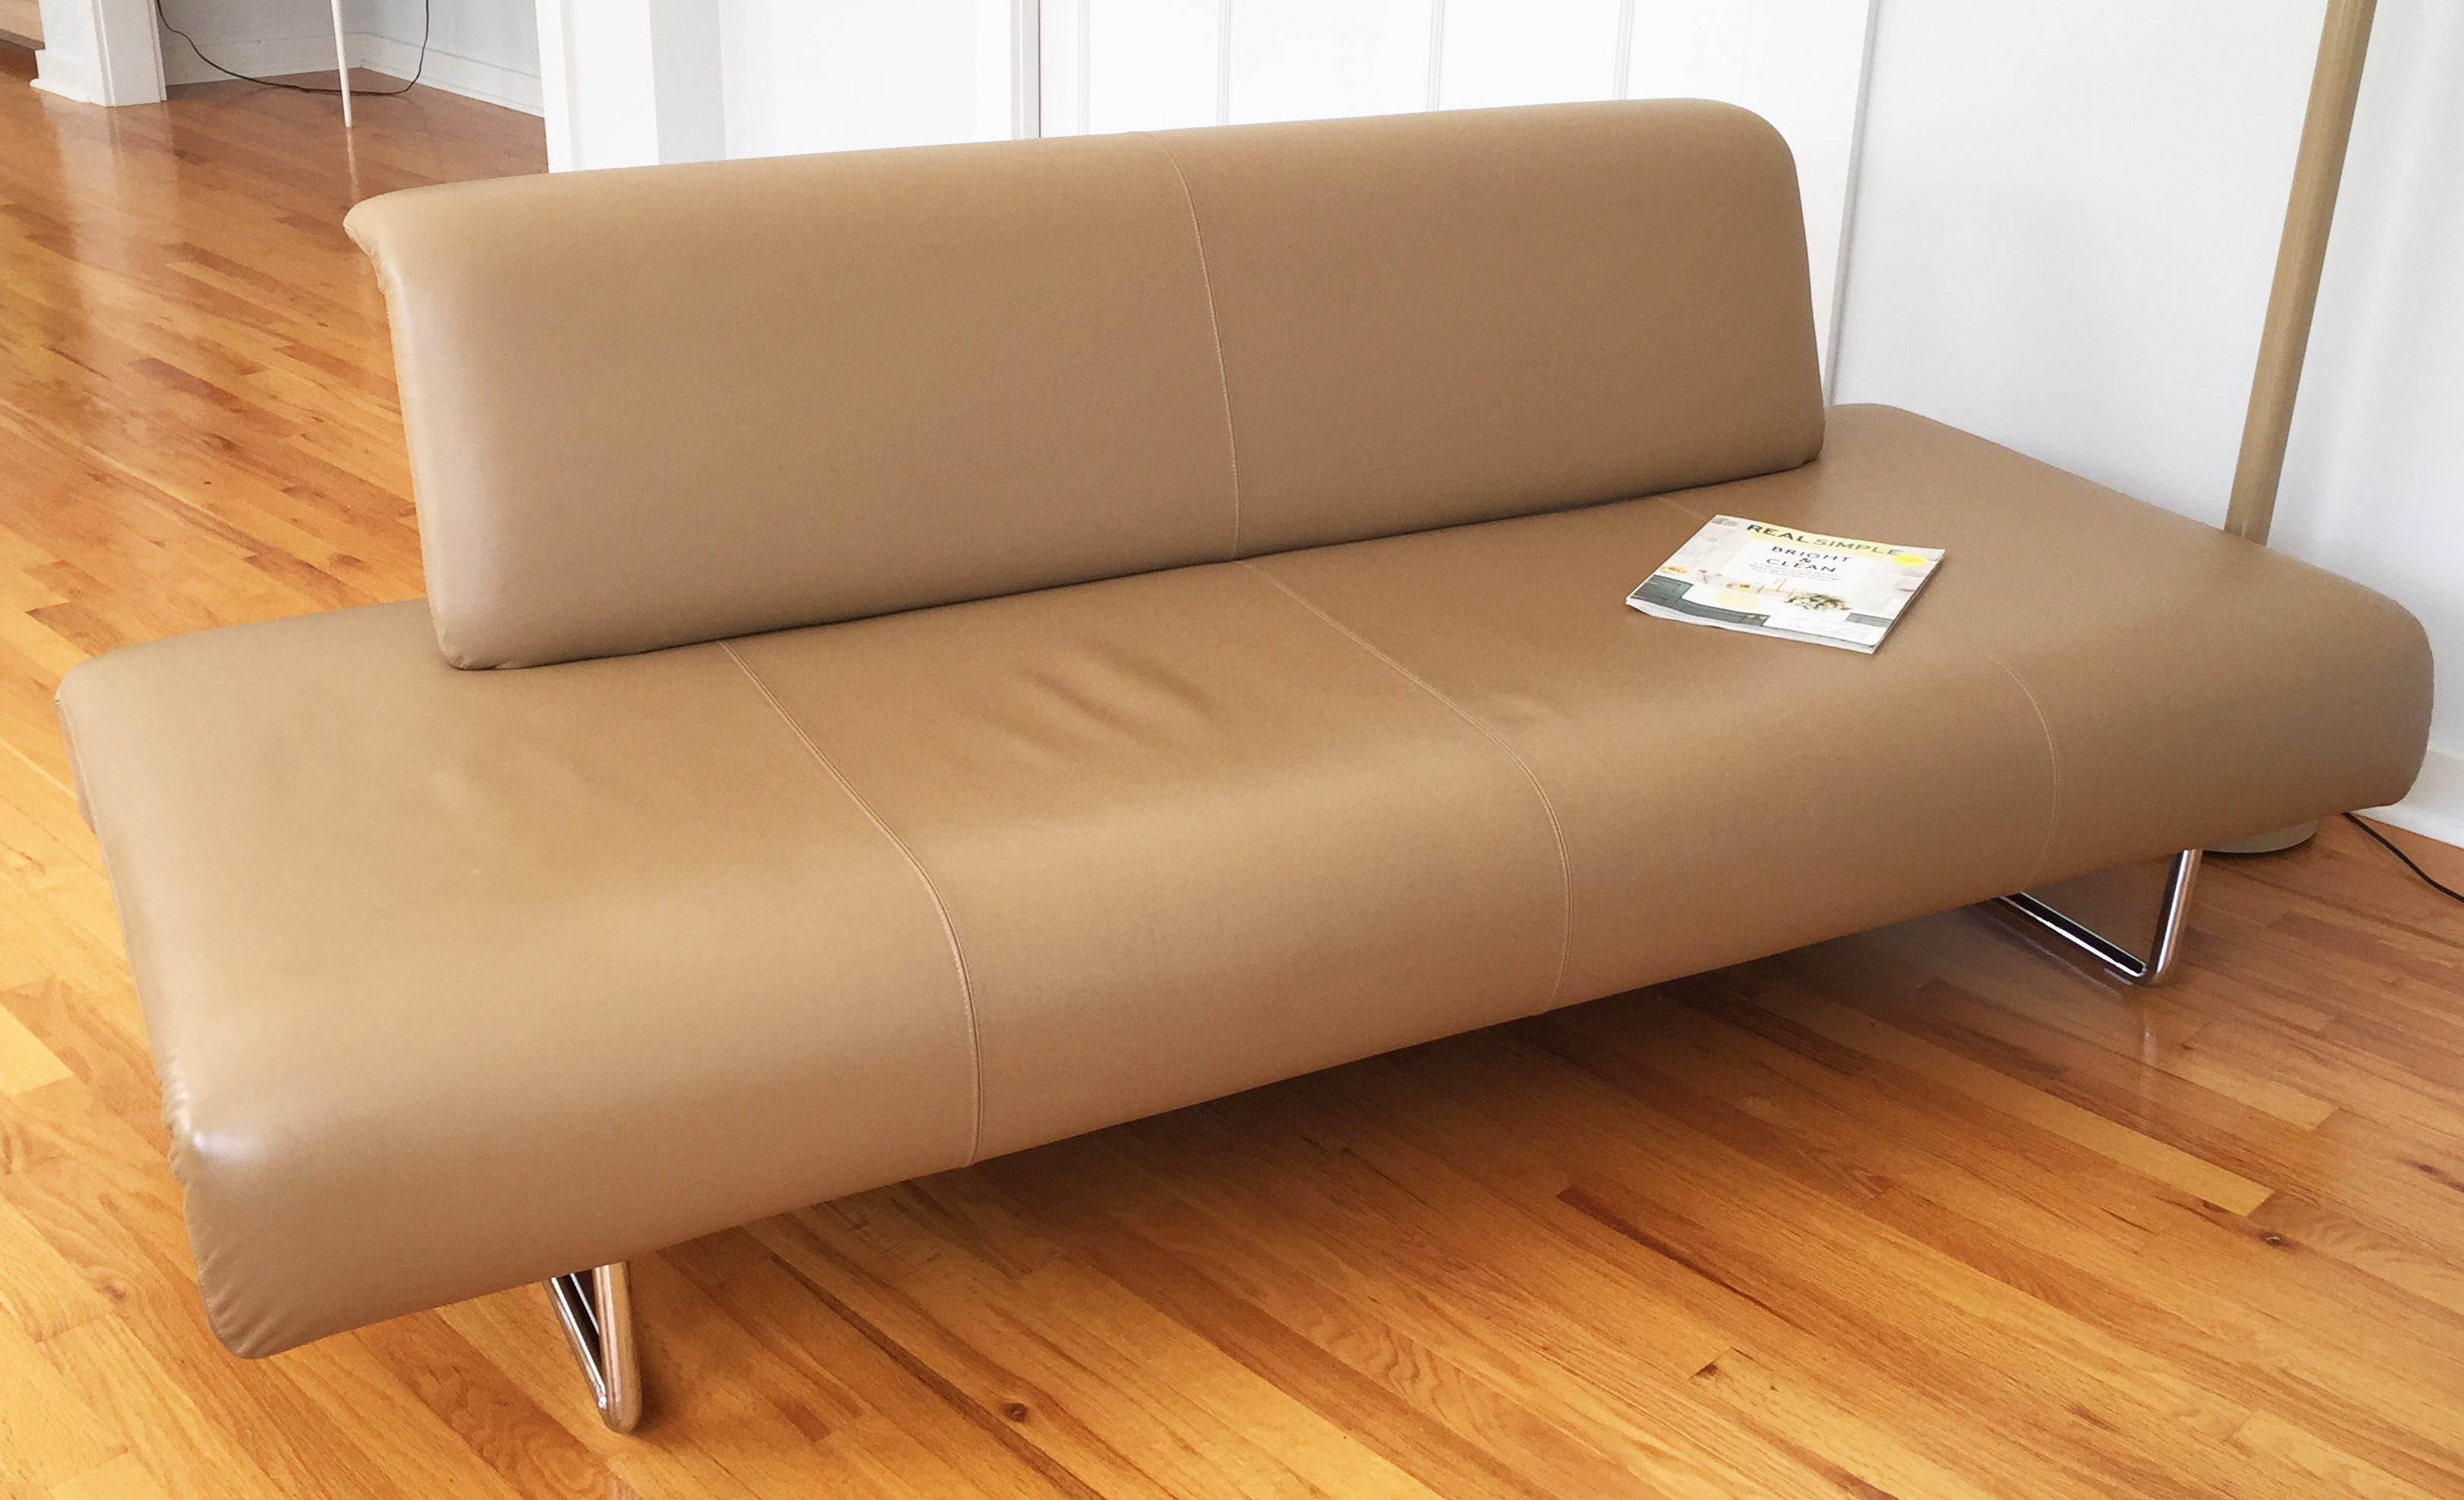 We Fell In Love With The Minimalism Of This Sofa. Would Love Looking At It.  Minimalism Contemporary Modern ...